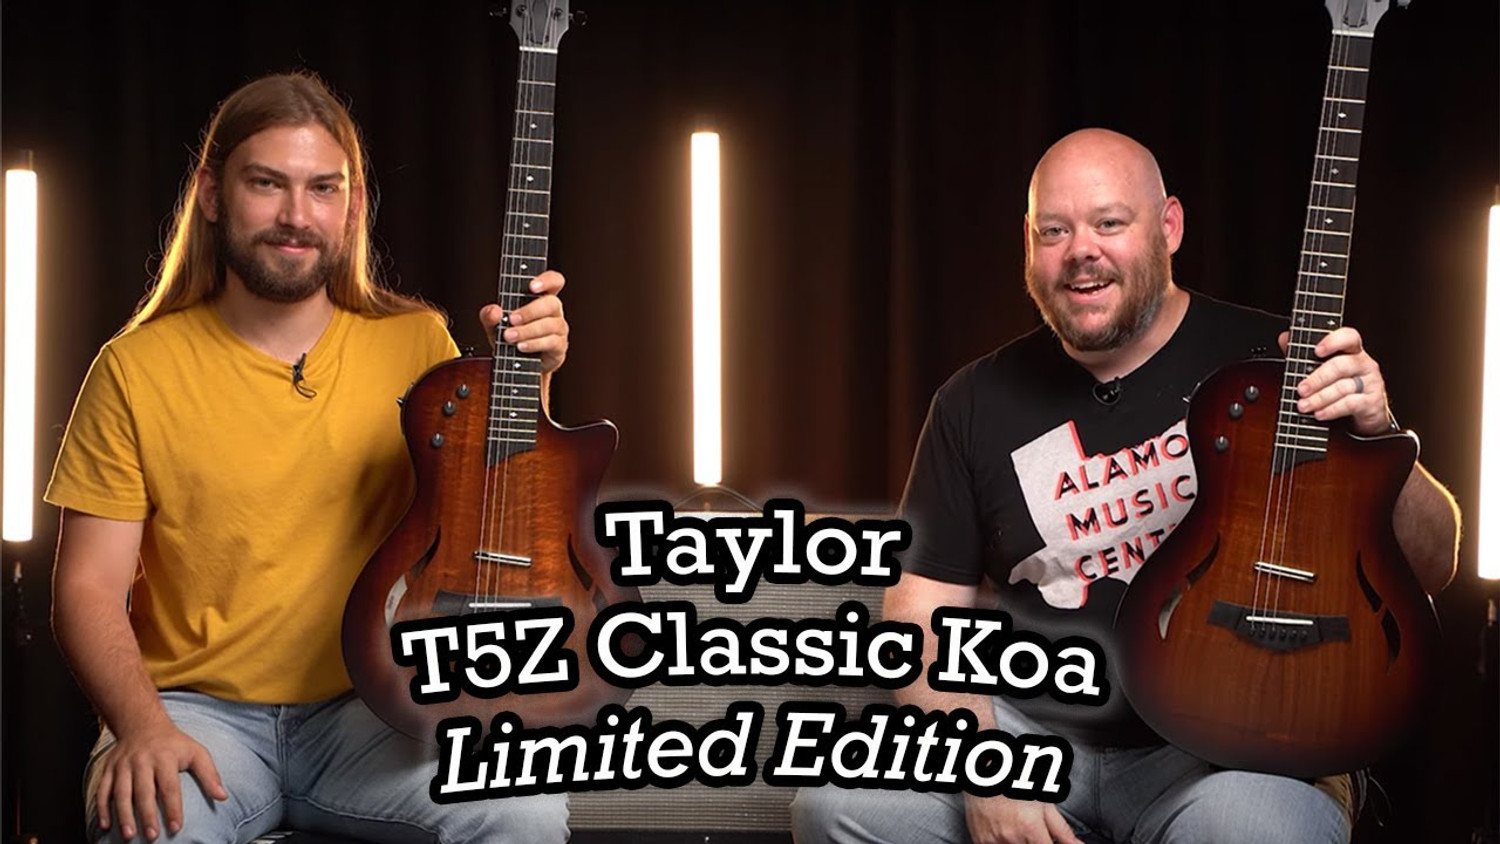 Taylor T5z Classic Koa | A Limited Edition Exotic Hybrid at a Competitive Price